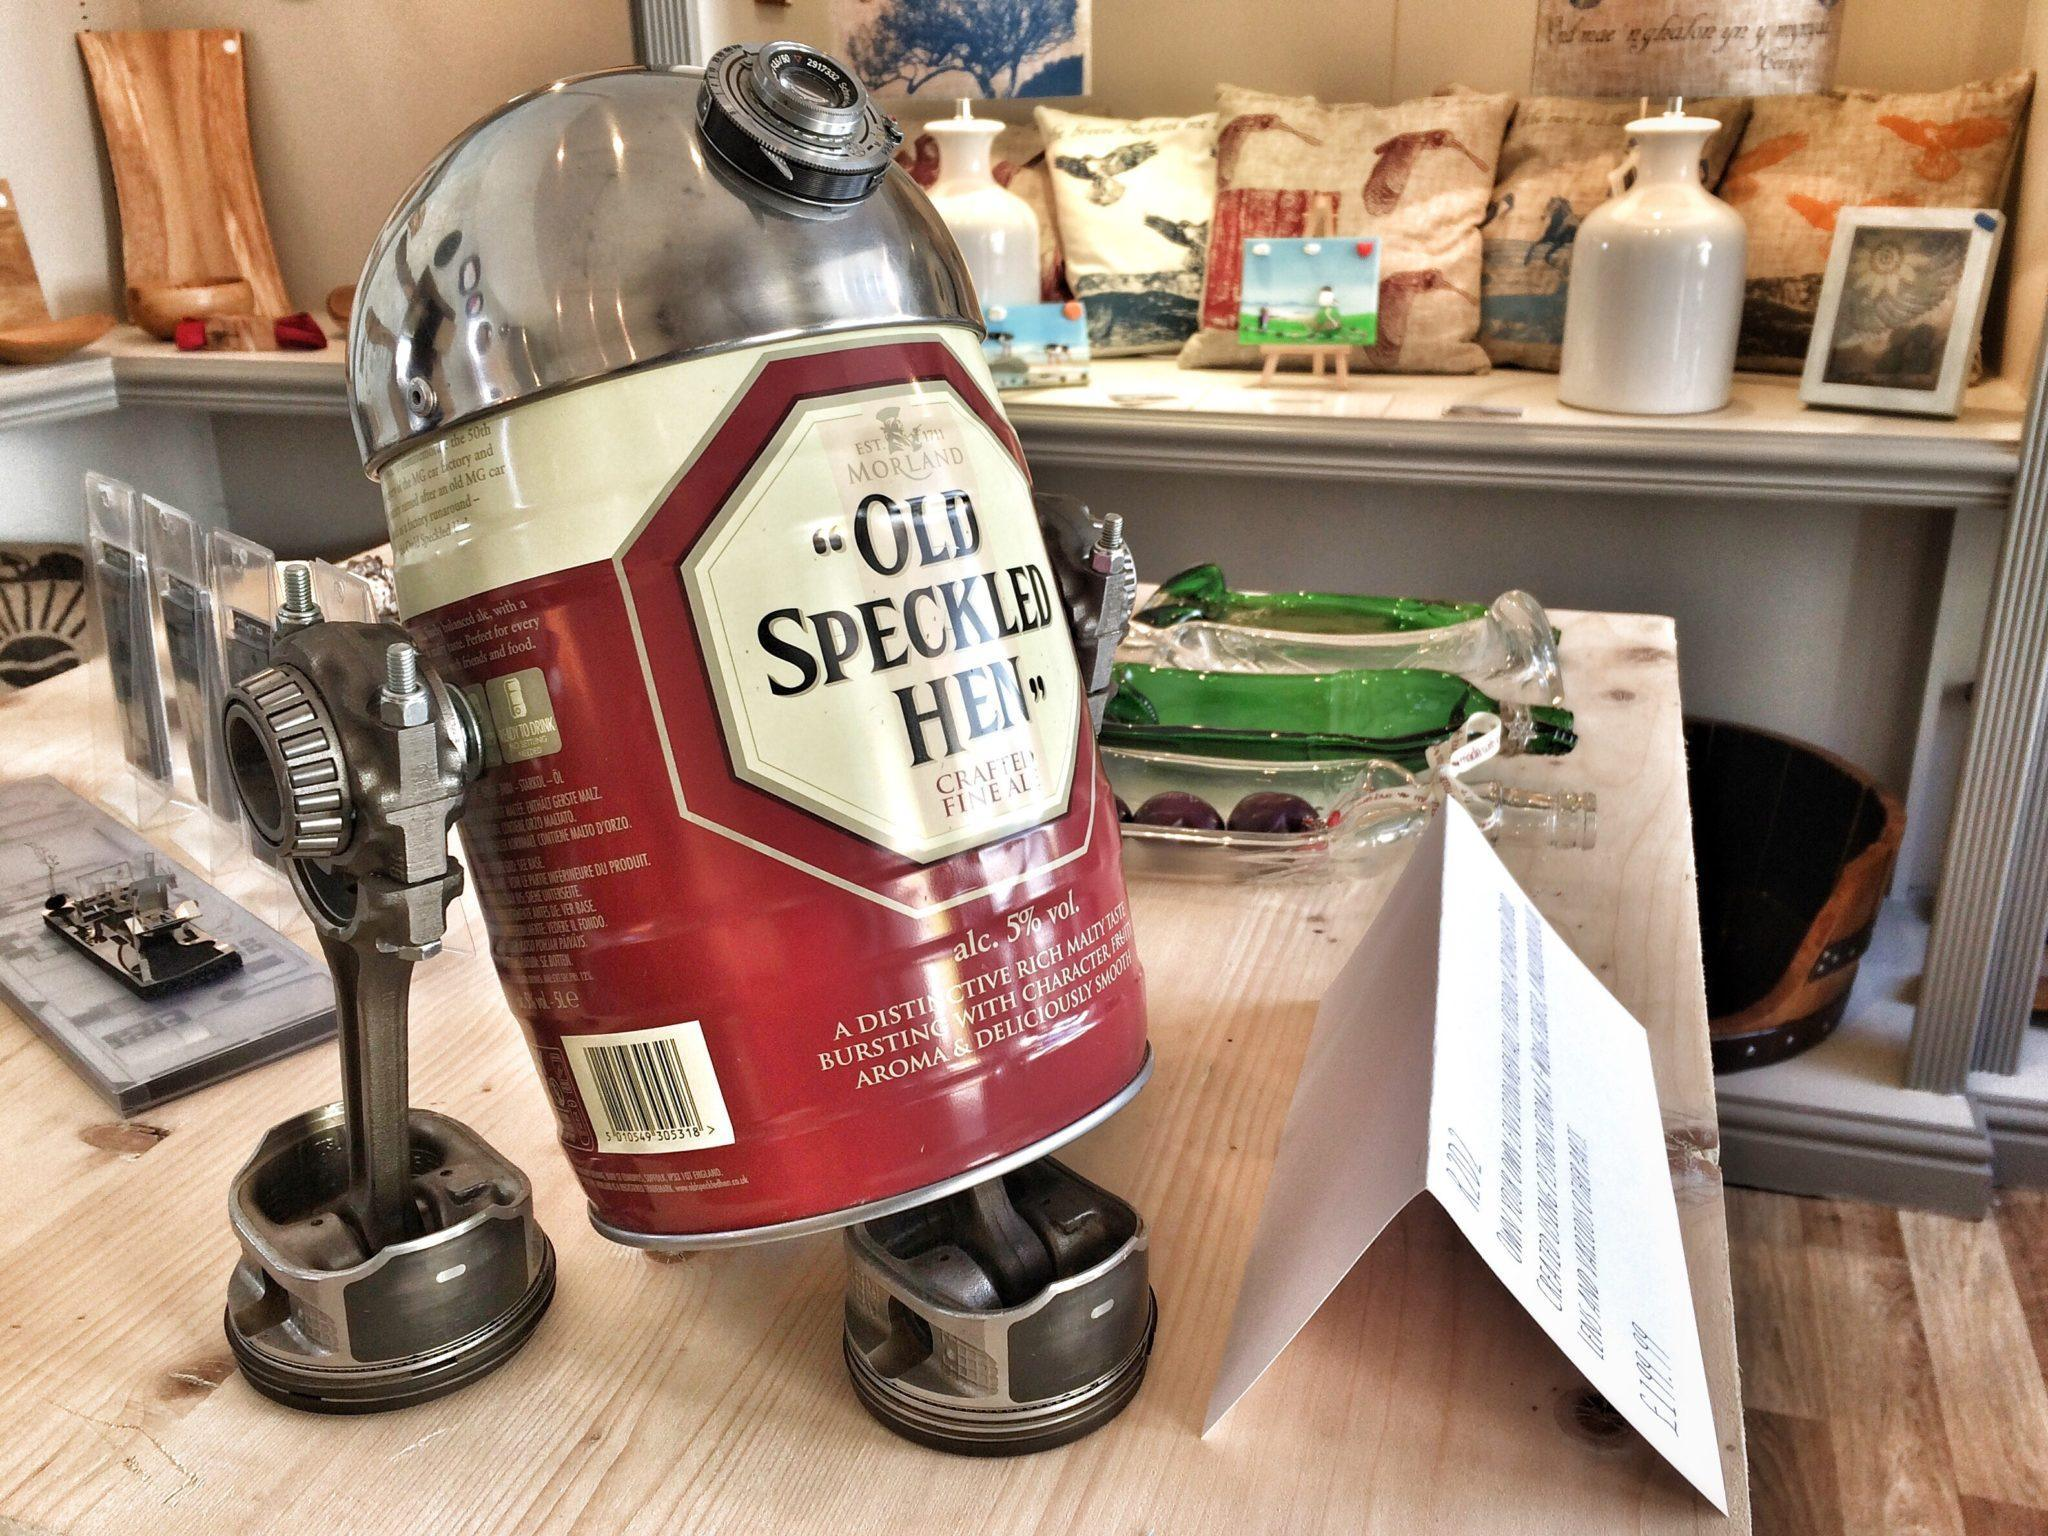 Recycled Droid in Echo Beach Recycled Shop Beaumaris Anglesey